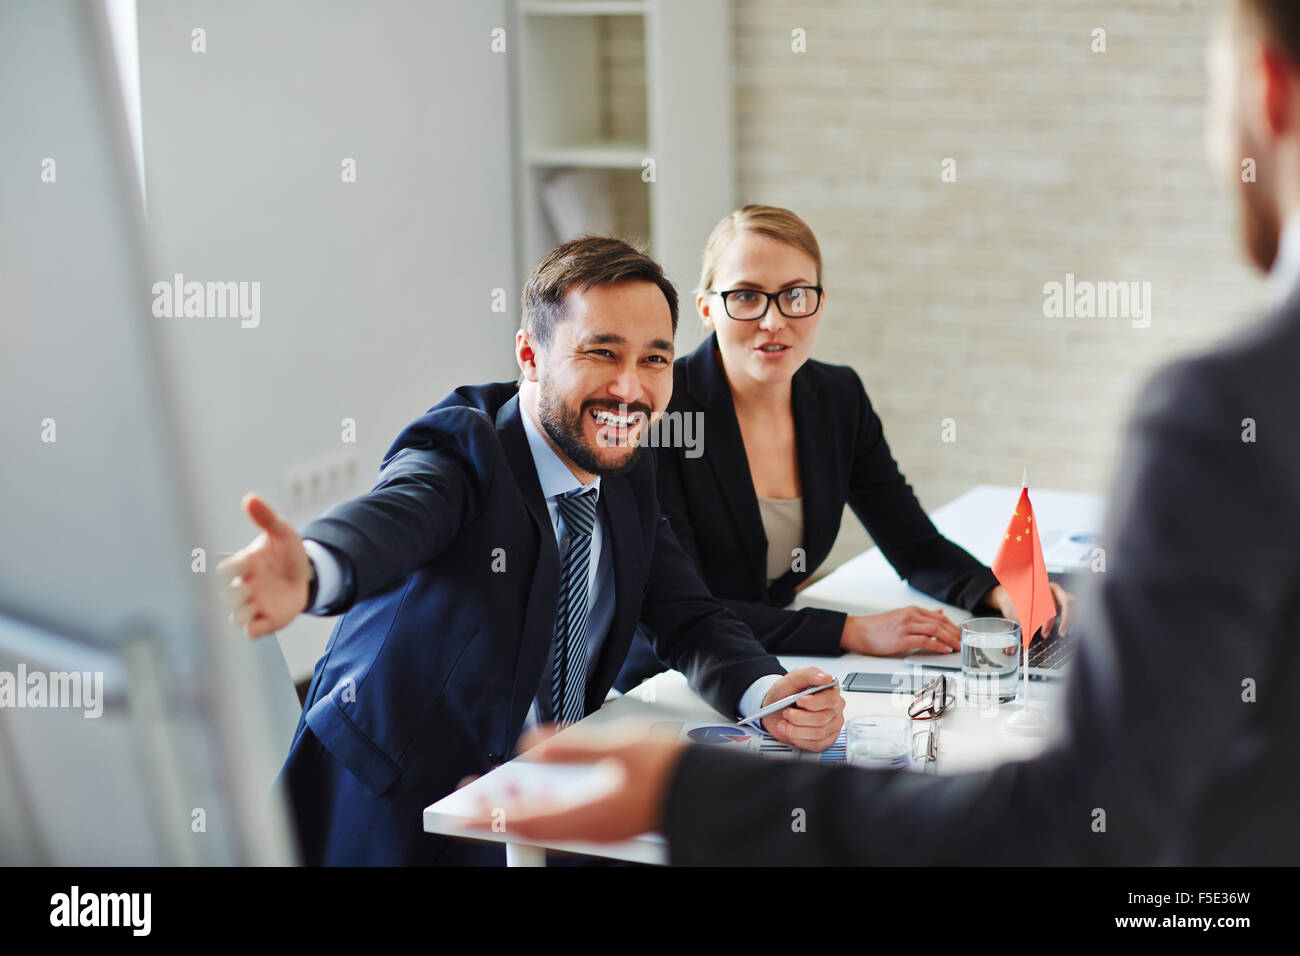 Business people welcoming and registrating foreign partners before conference Stock Photo